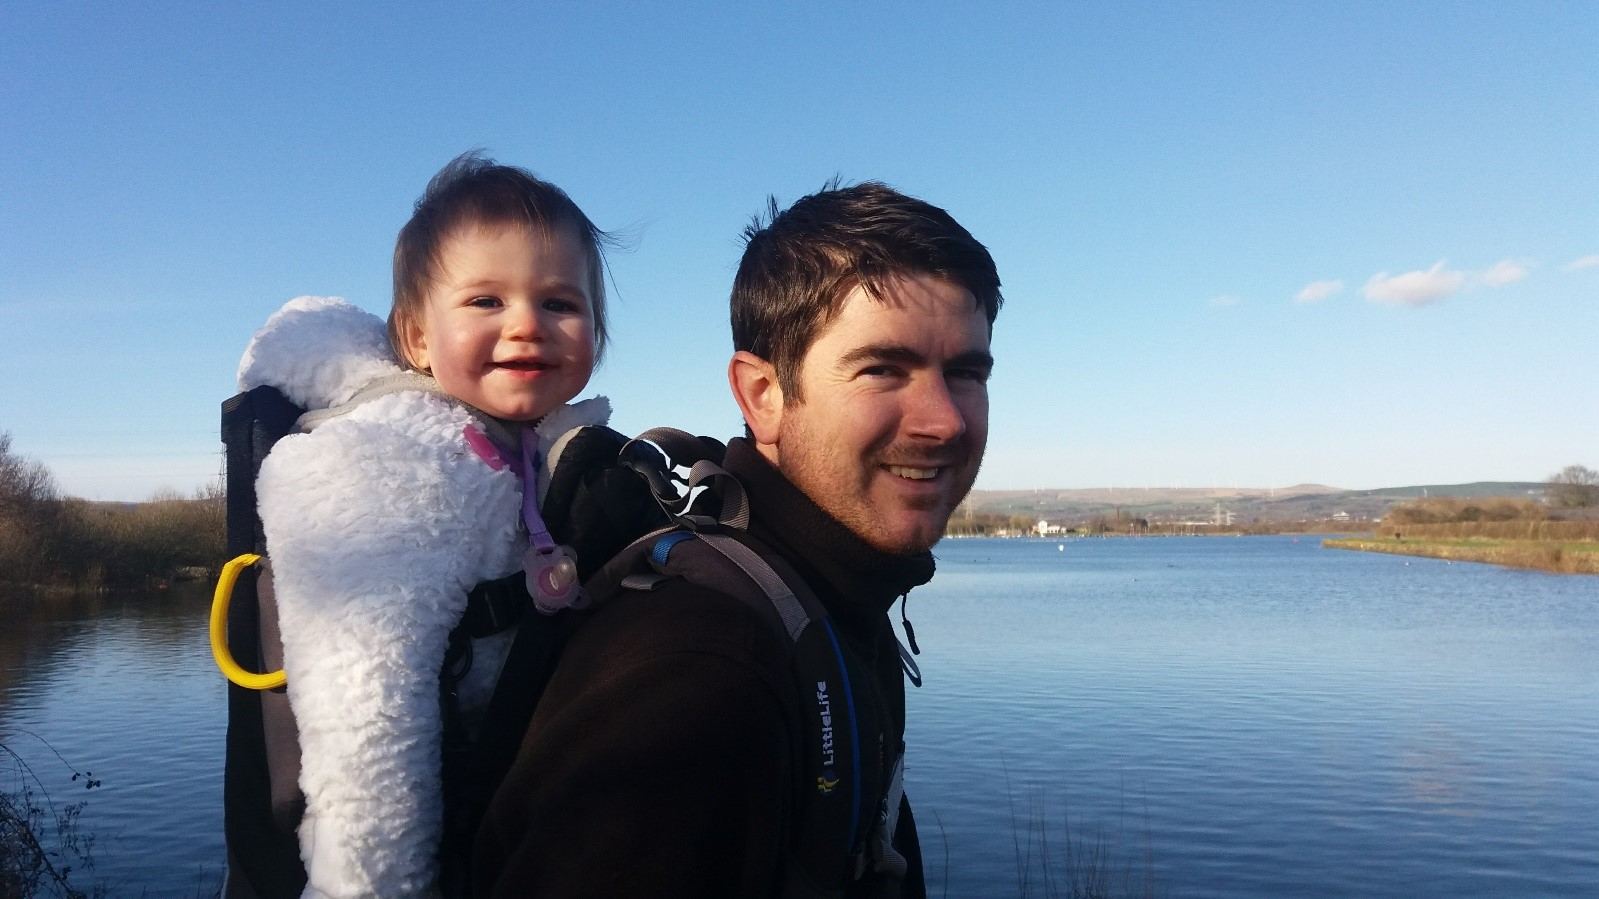 Father and child with Elton Reservoir in the background